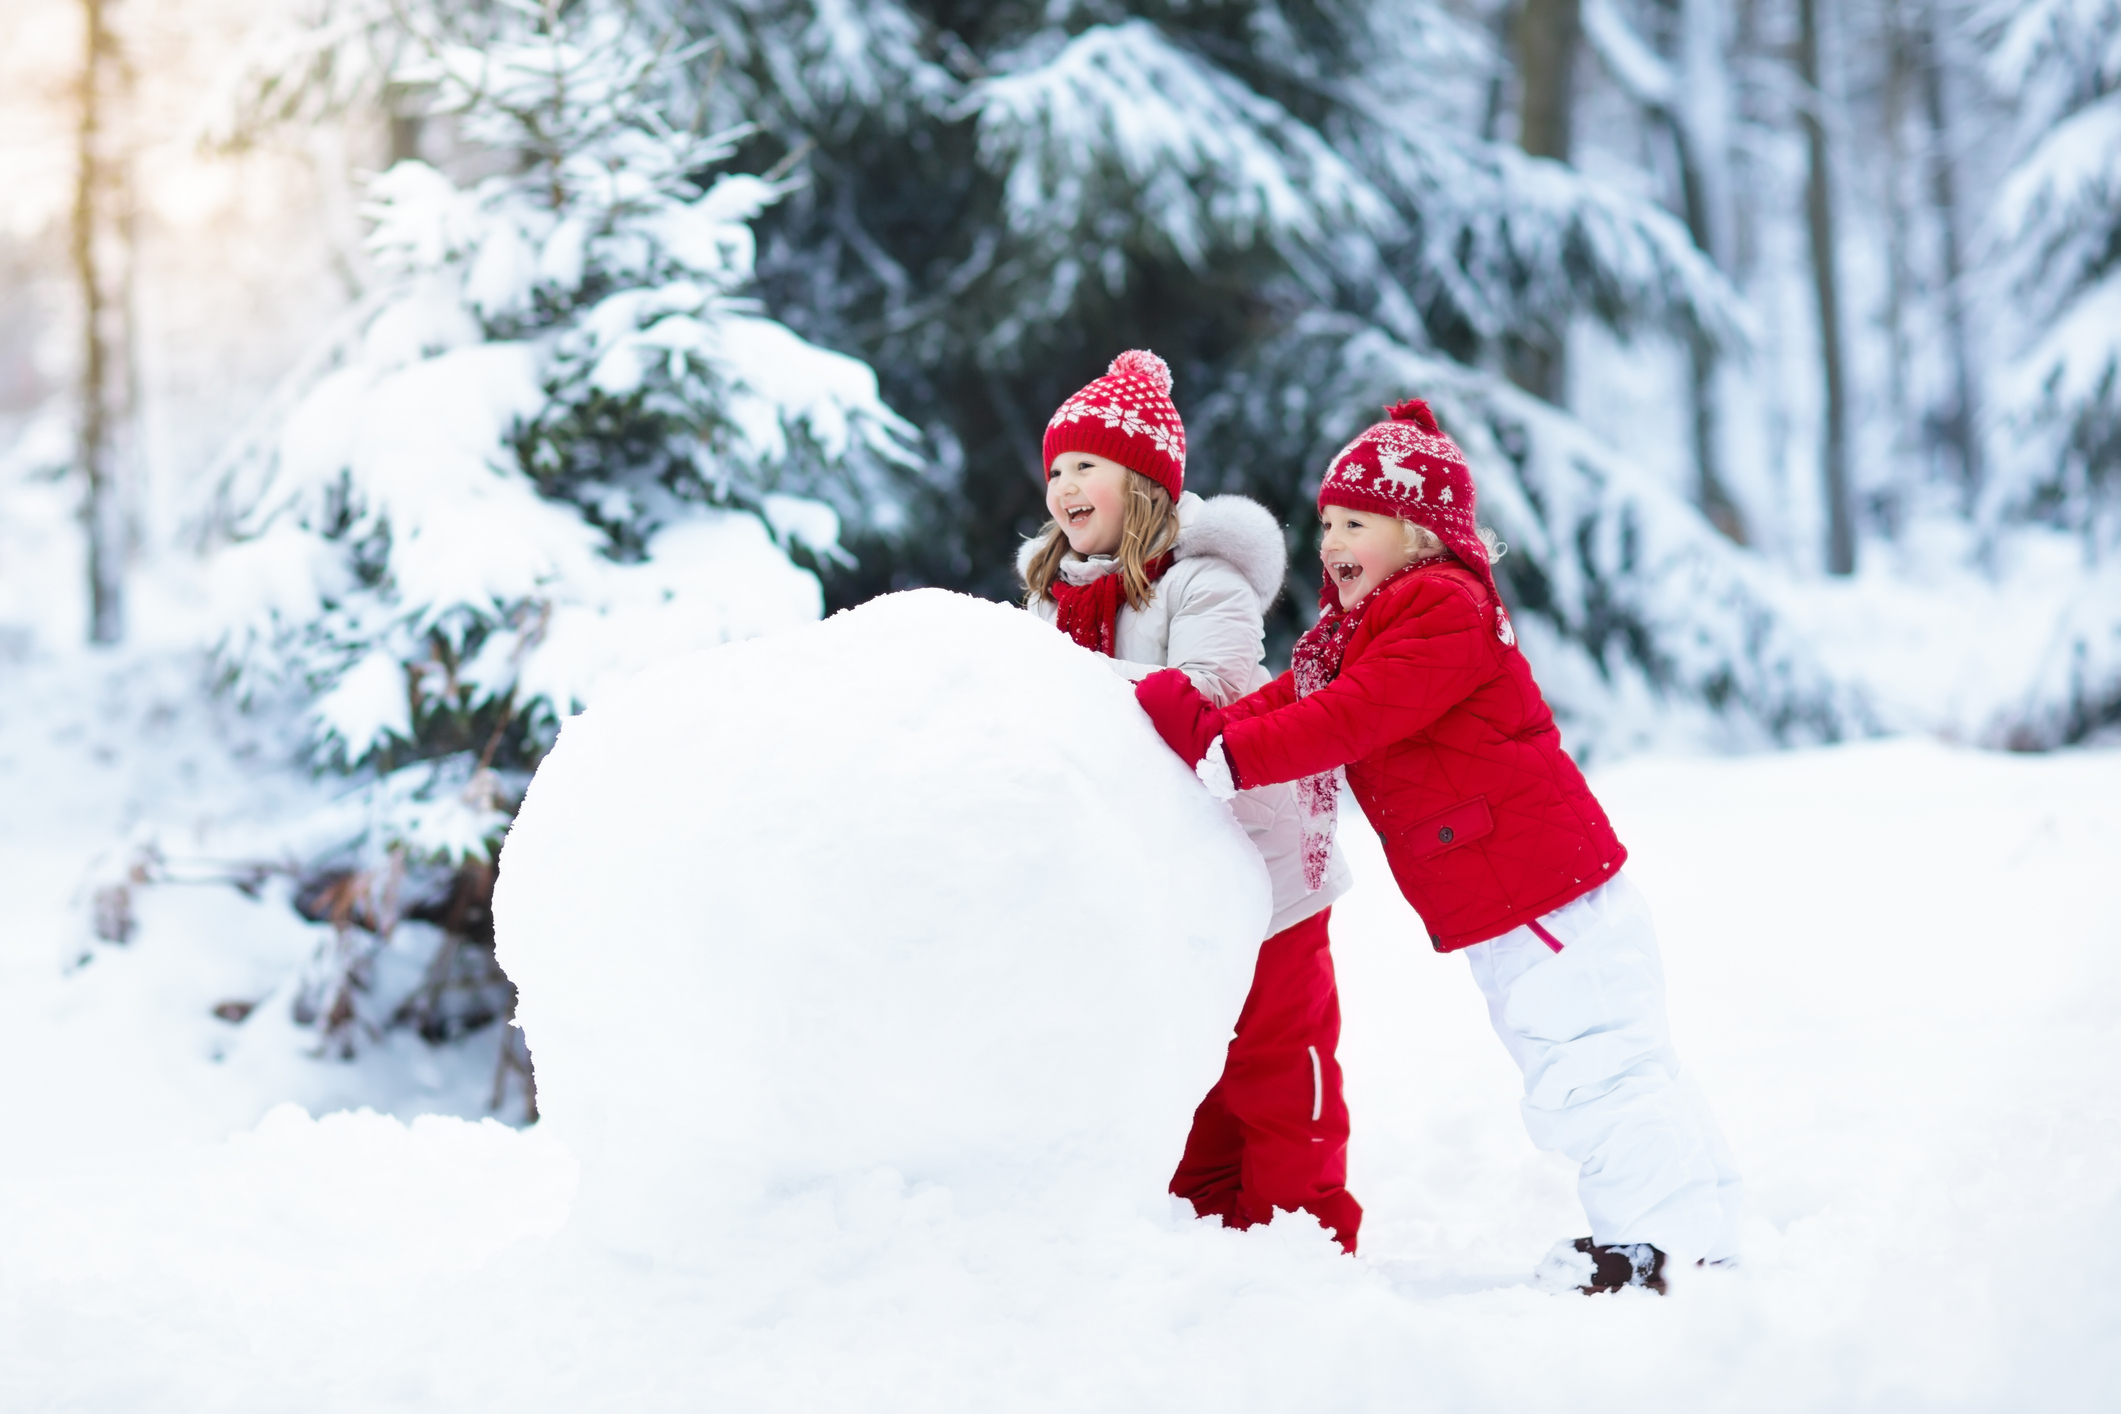 Outdoor Activities To Keep Kids Entertained On Snowy